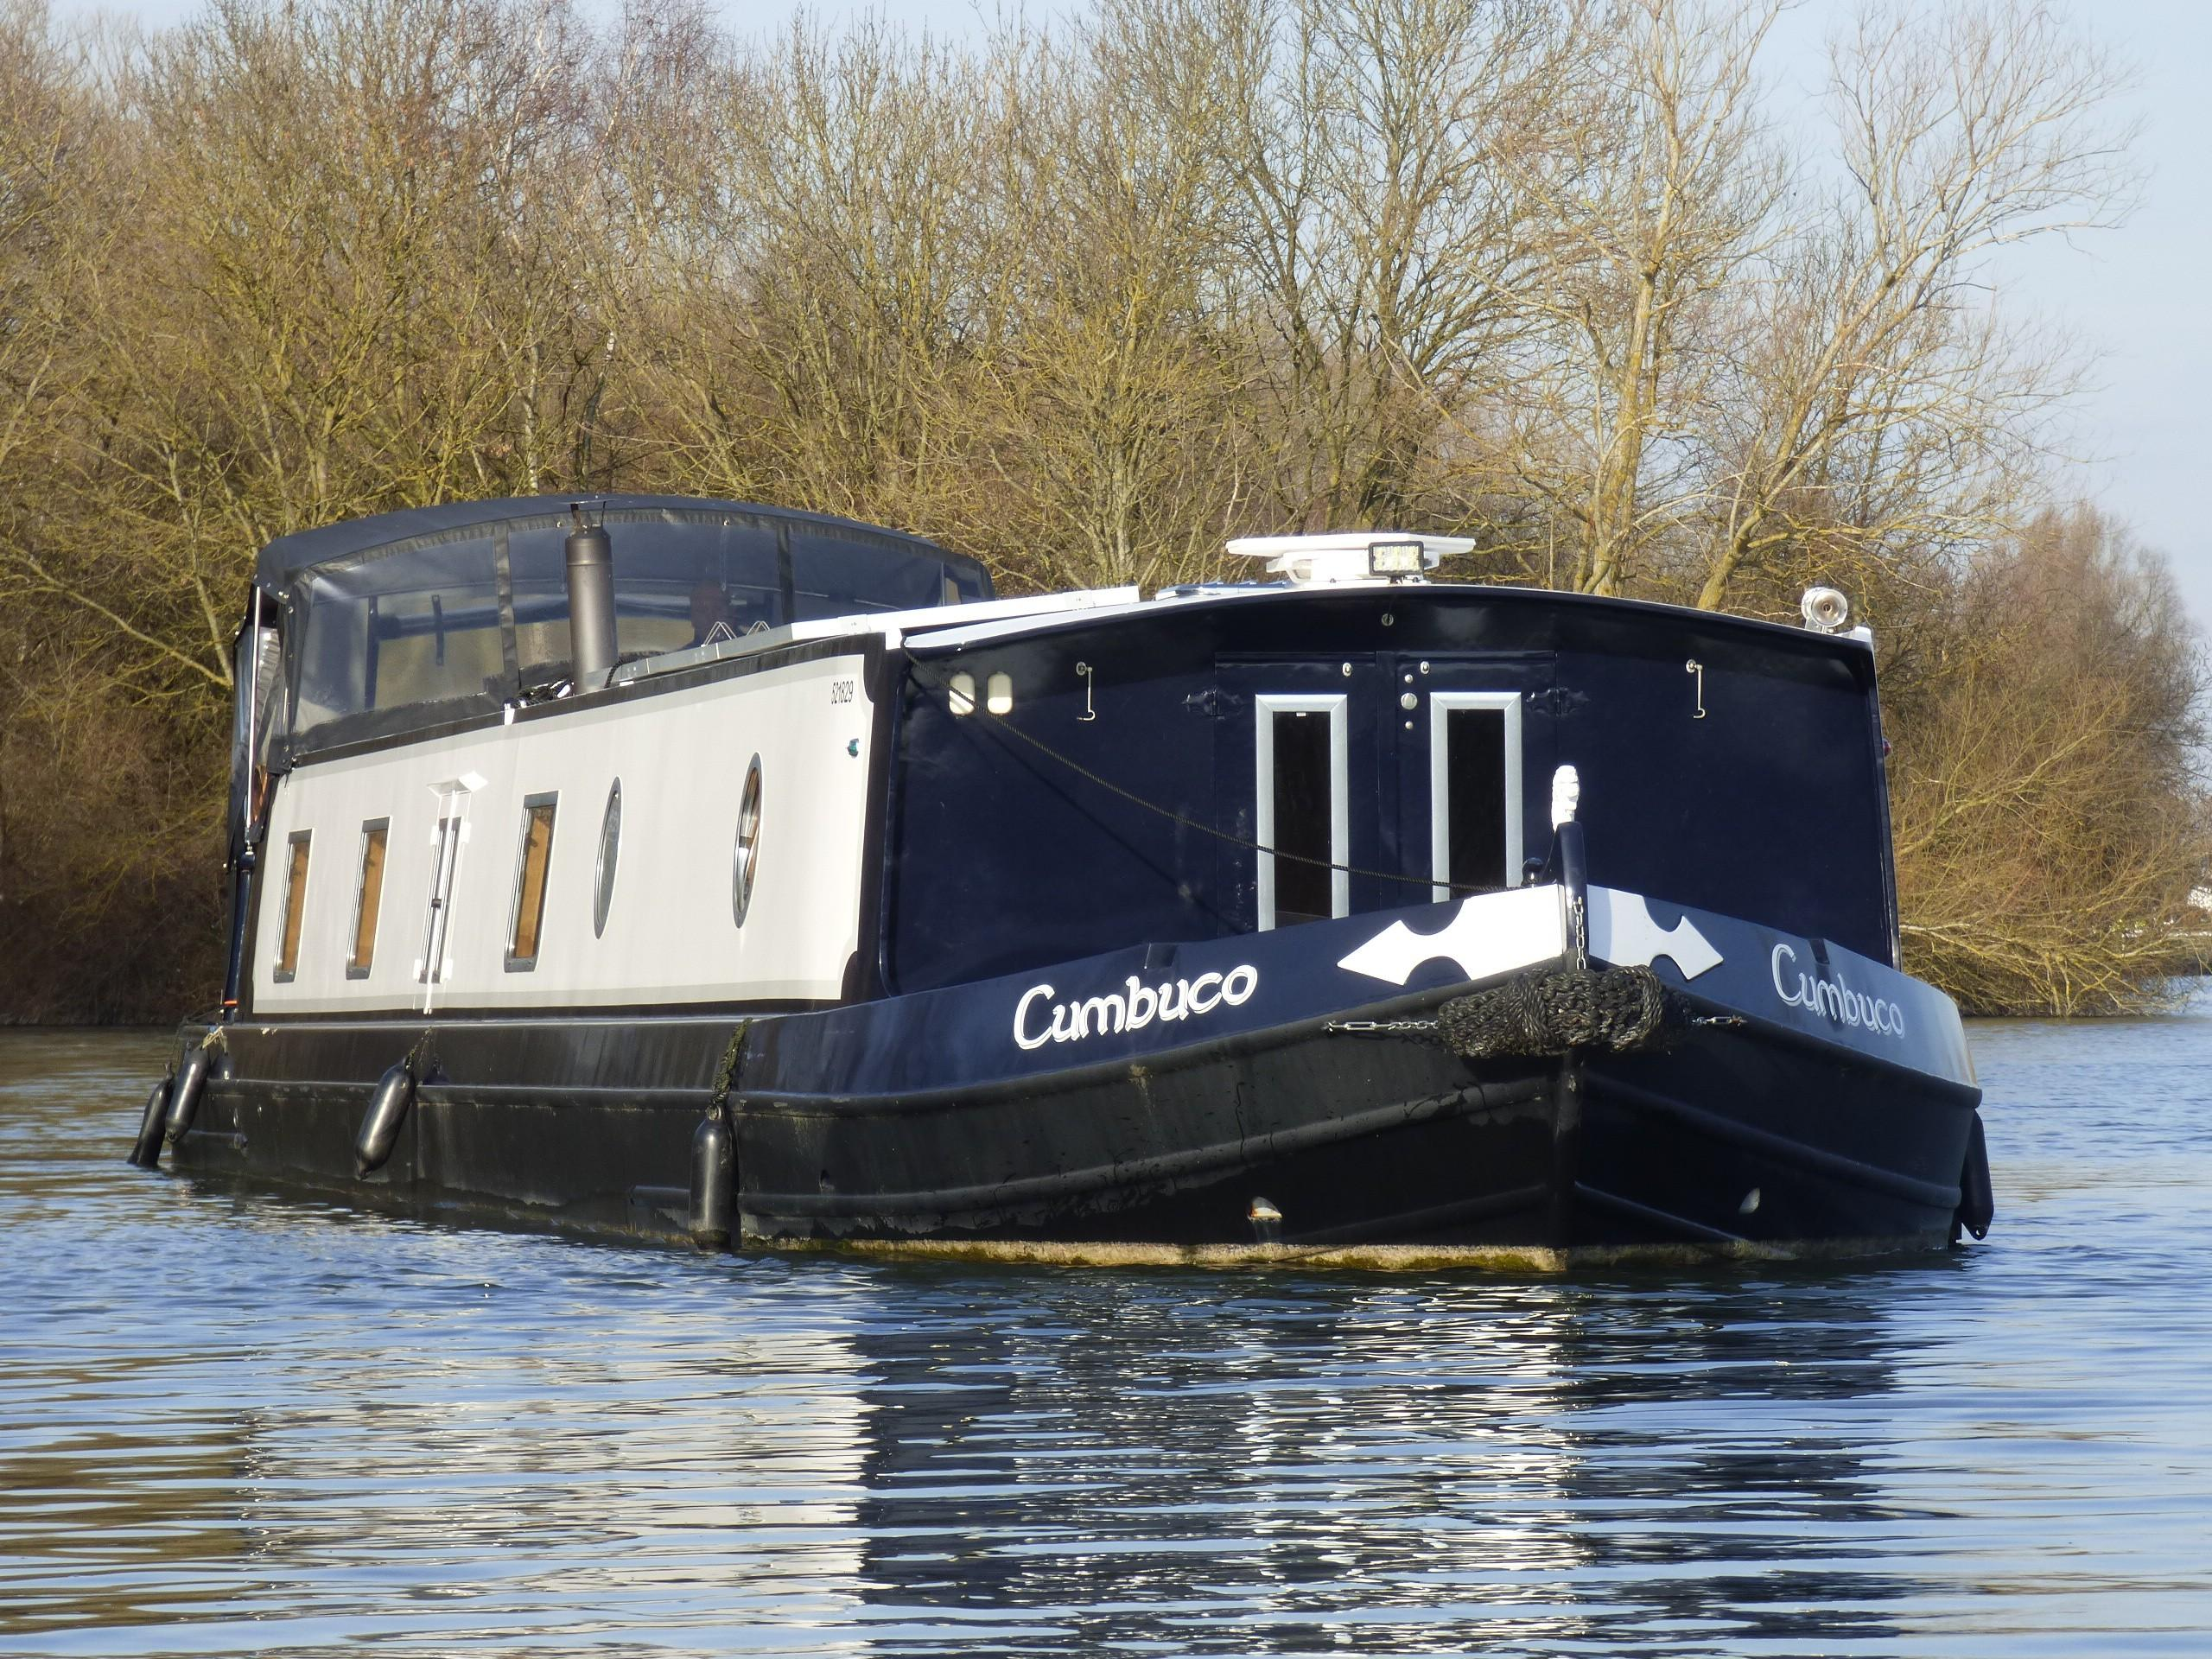 Wide Beam Narrowboat 70'x11' by Viking Canal Boats